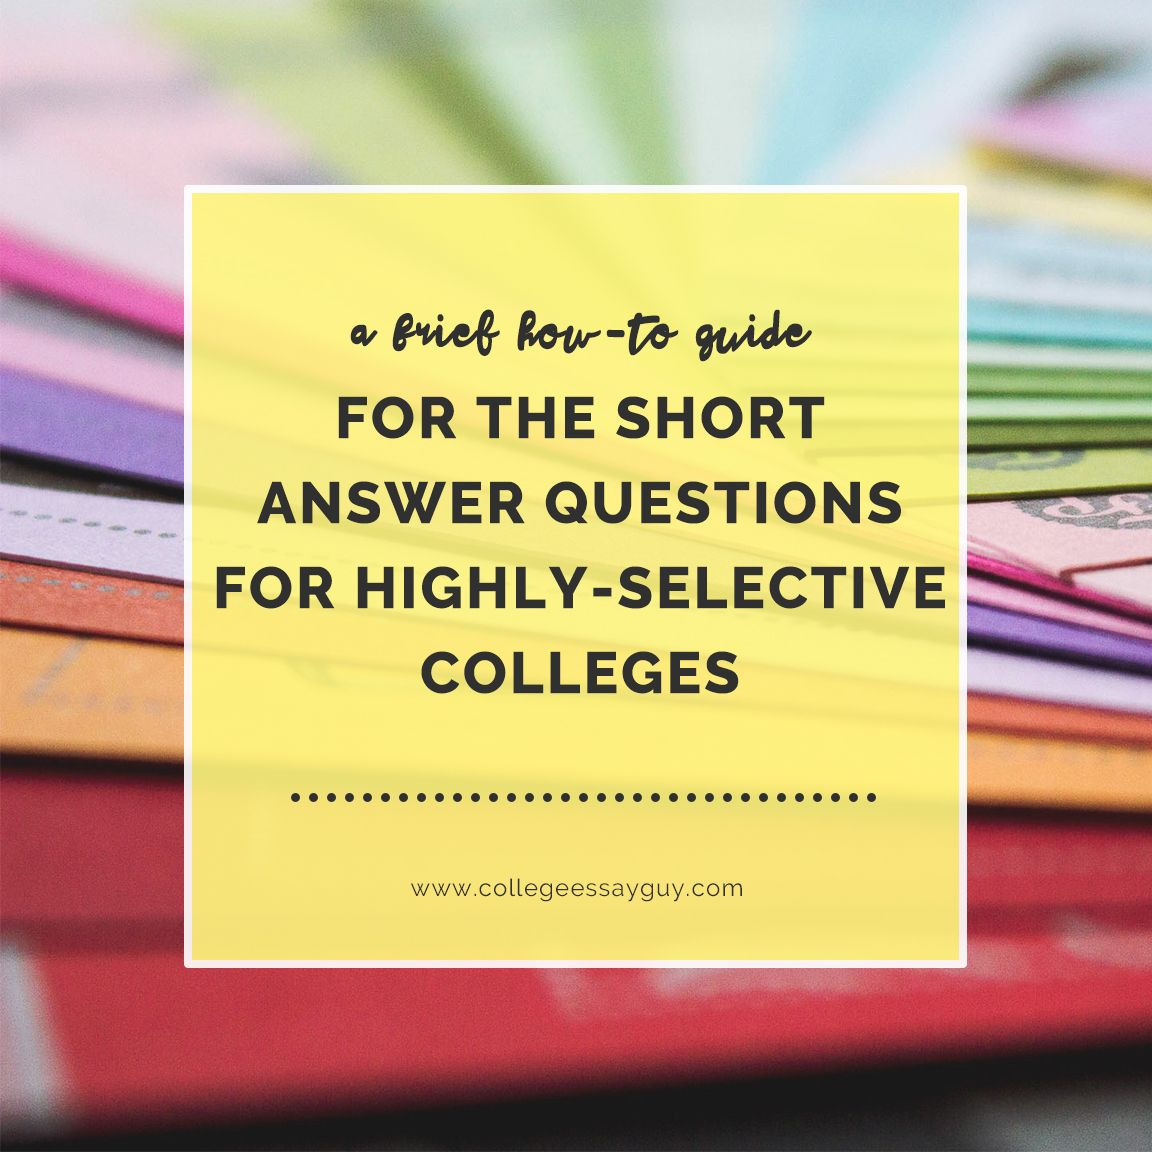 You know those Common App short answer questions required by USC, Columbia, Stanford, UChicago, and Yale? This is a guide for answering those questions. With 11 tips. In a Dos and Dont's format. Check it out: goo.gl/GGRVc6